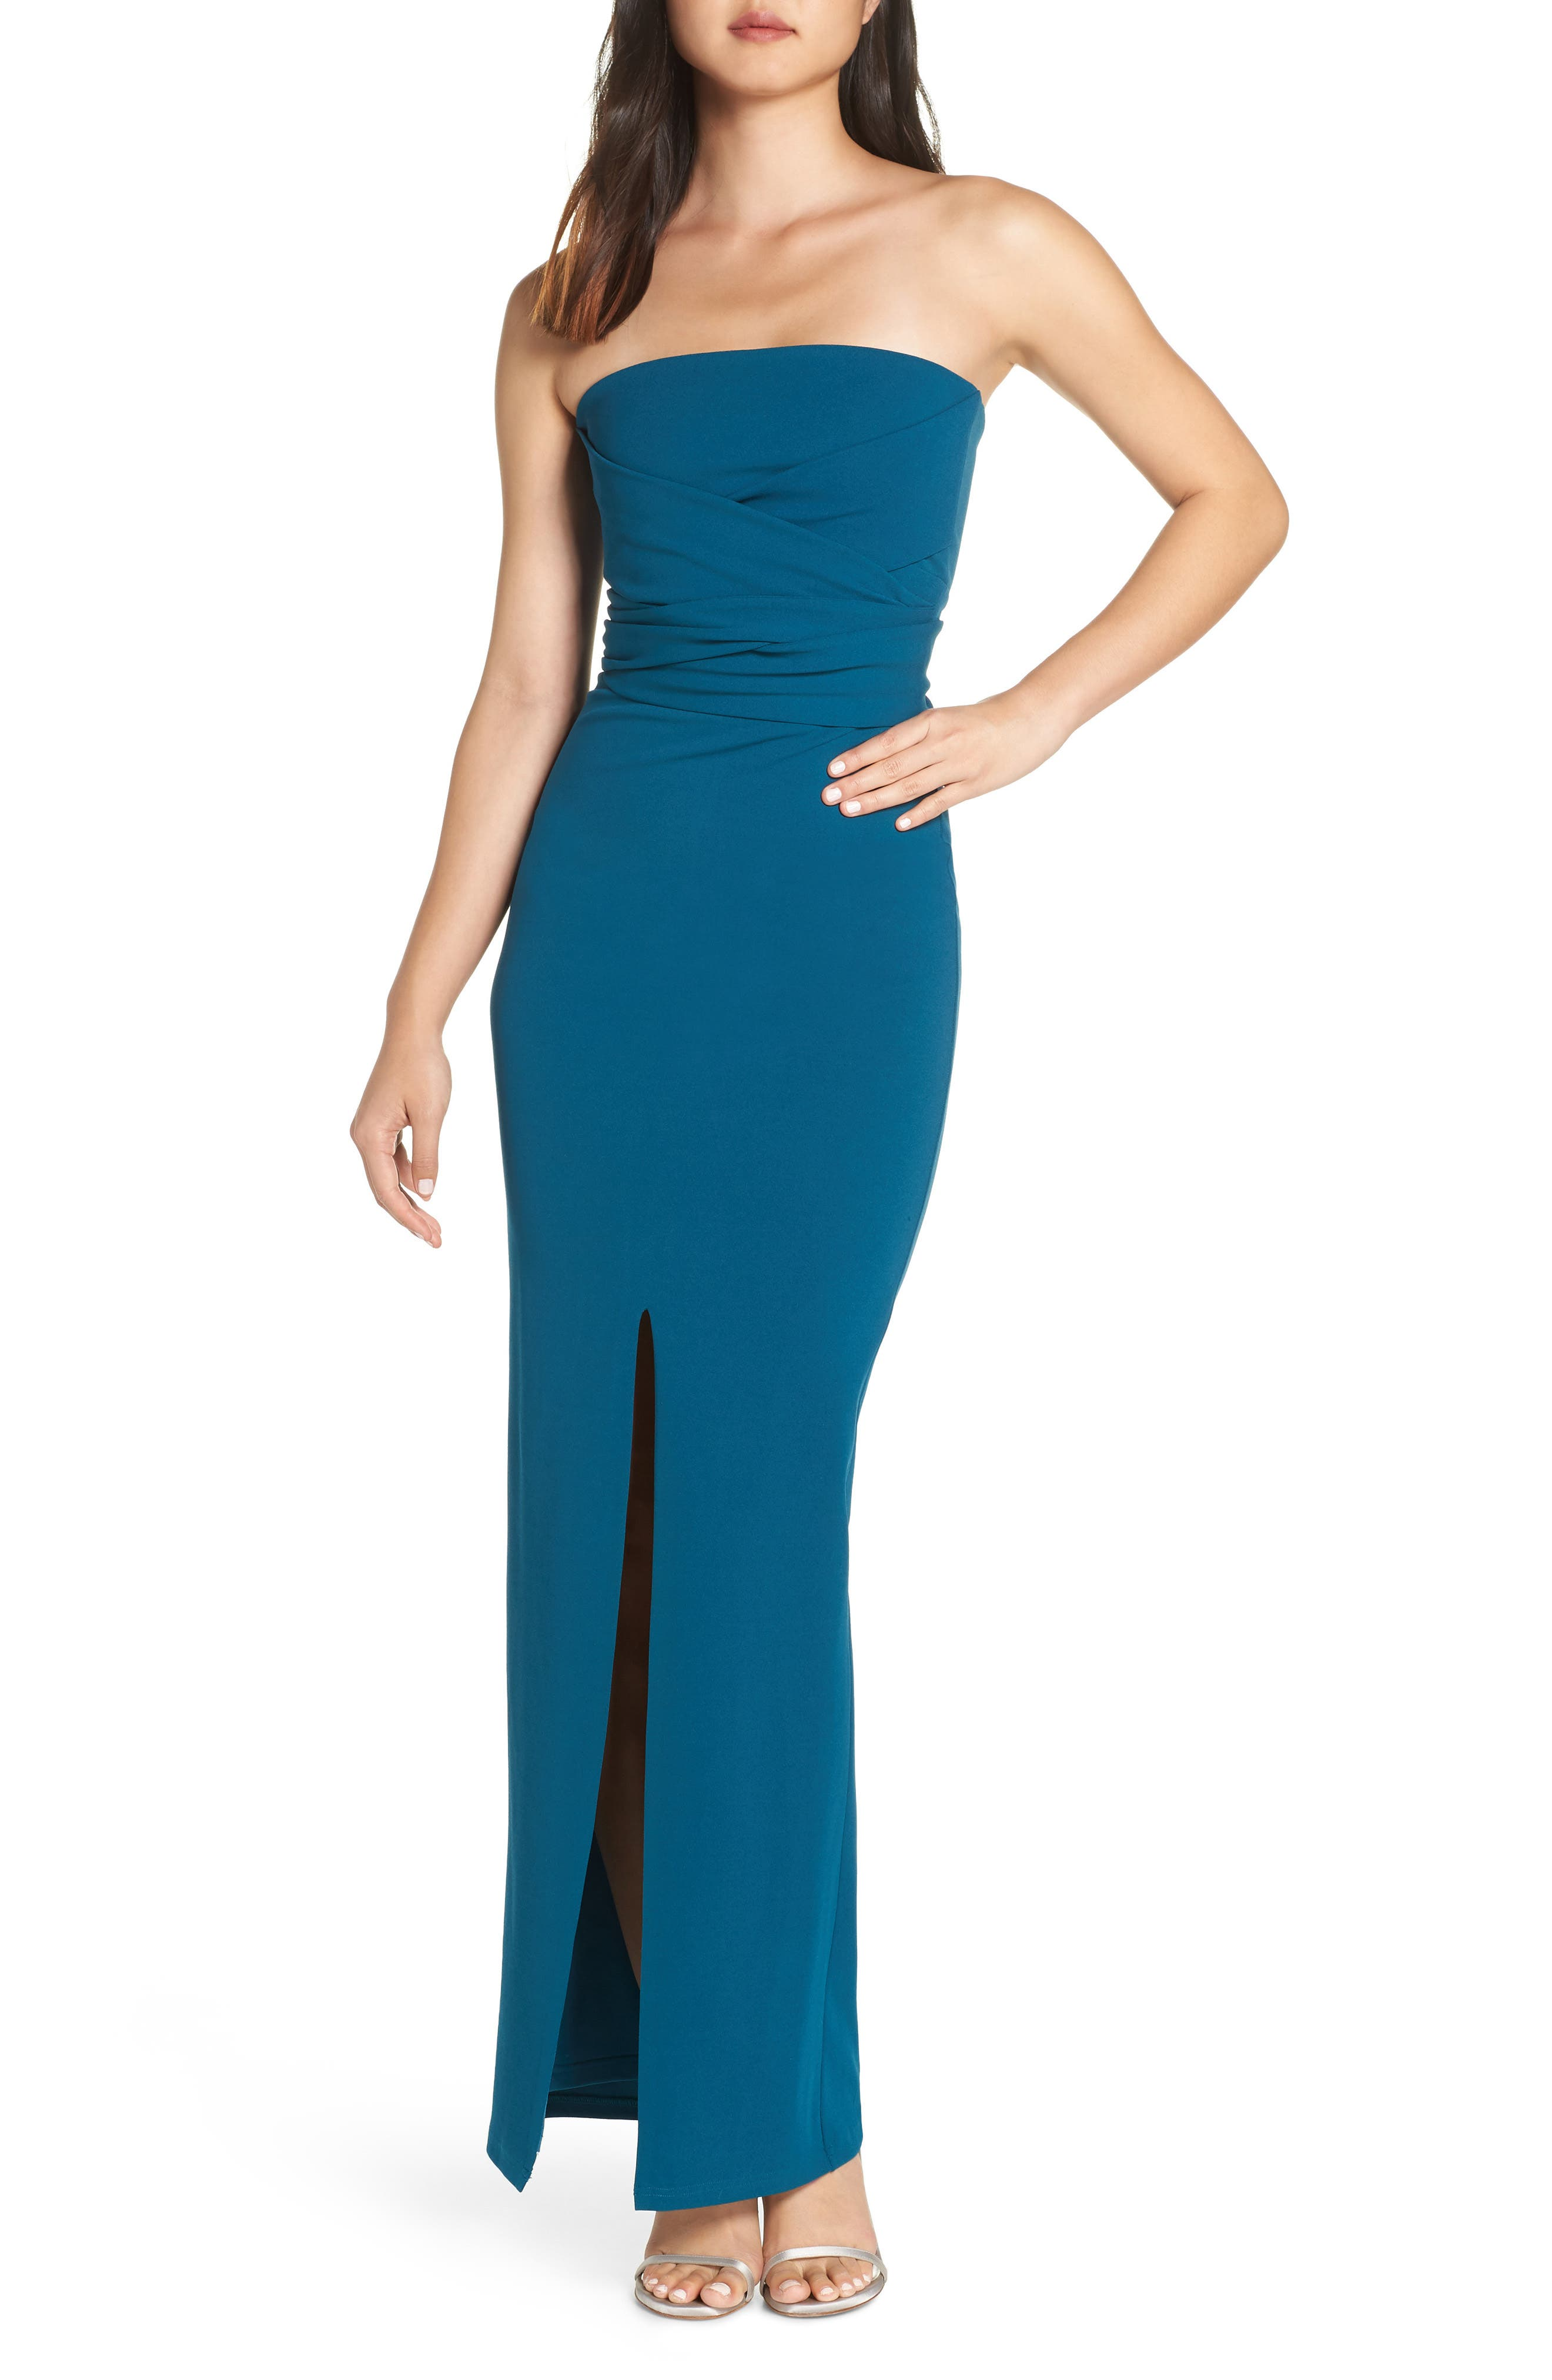 Lulus Own The Night Strapless Maxi Dress, Green